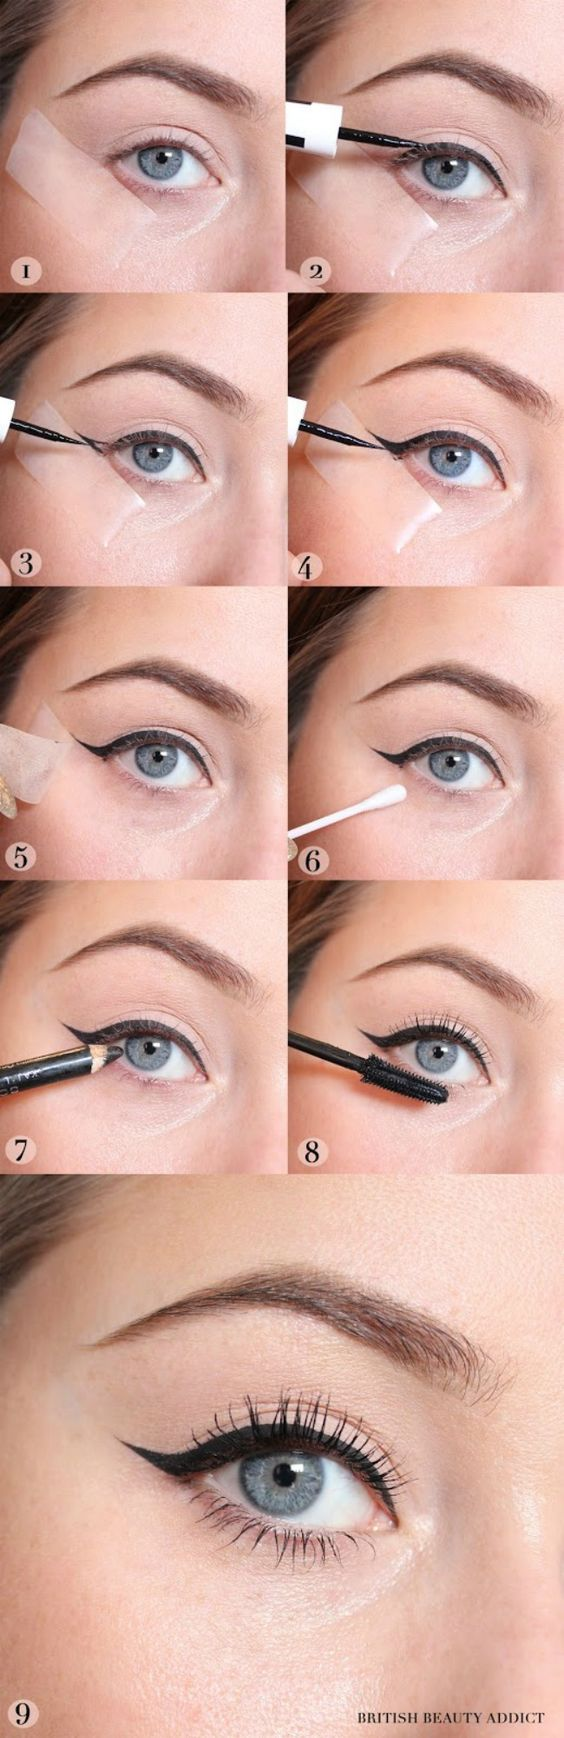 The 11 Best Eye Makeup Tips and Tricks   Winged Eyeliner Trick Using Tape: